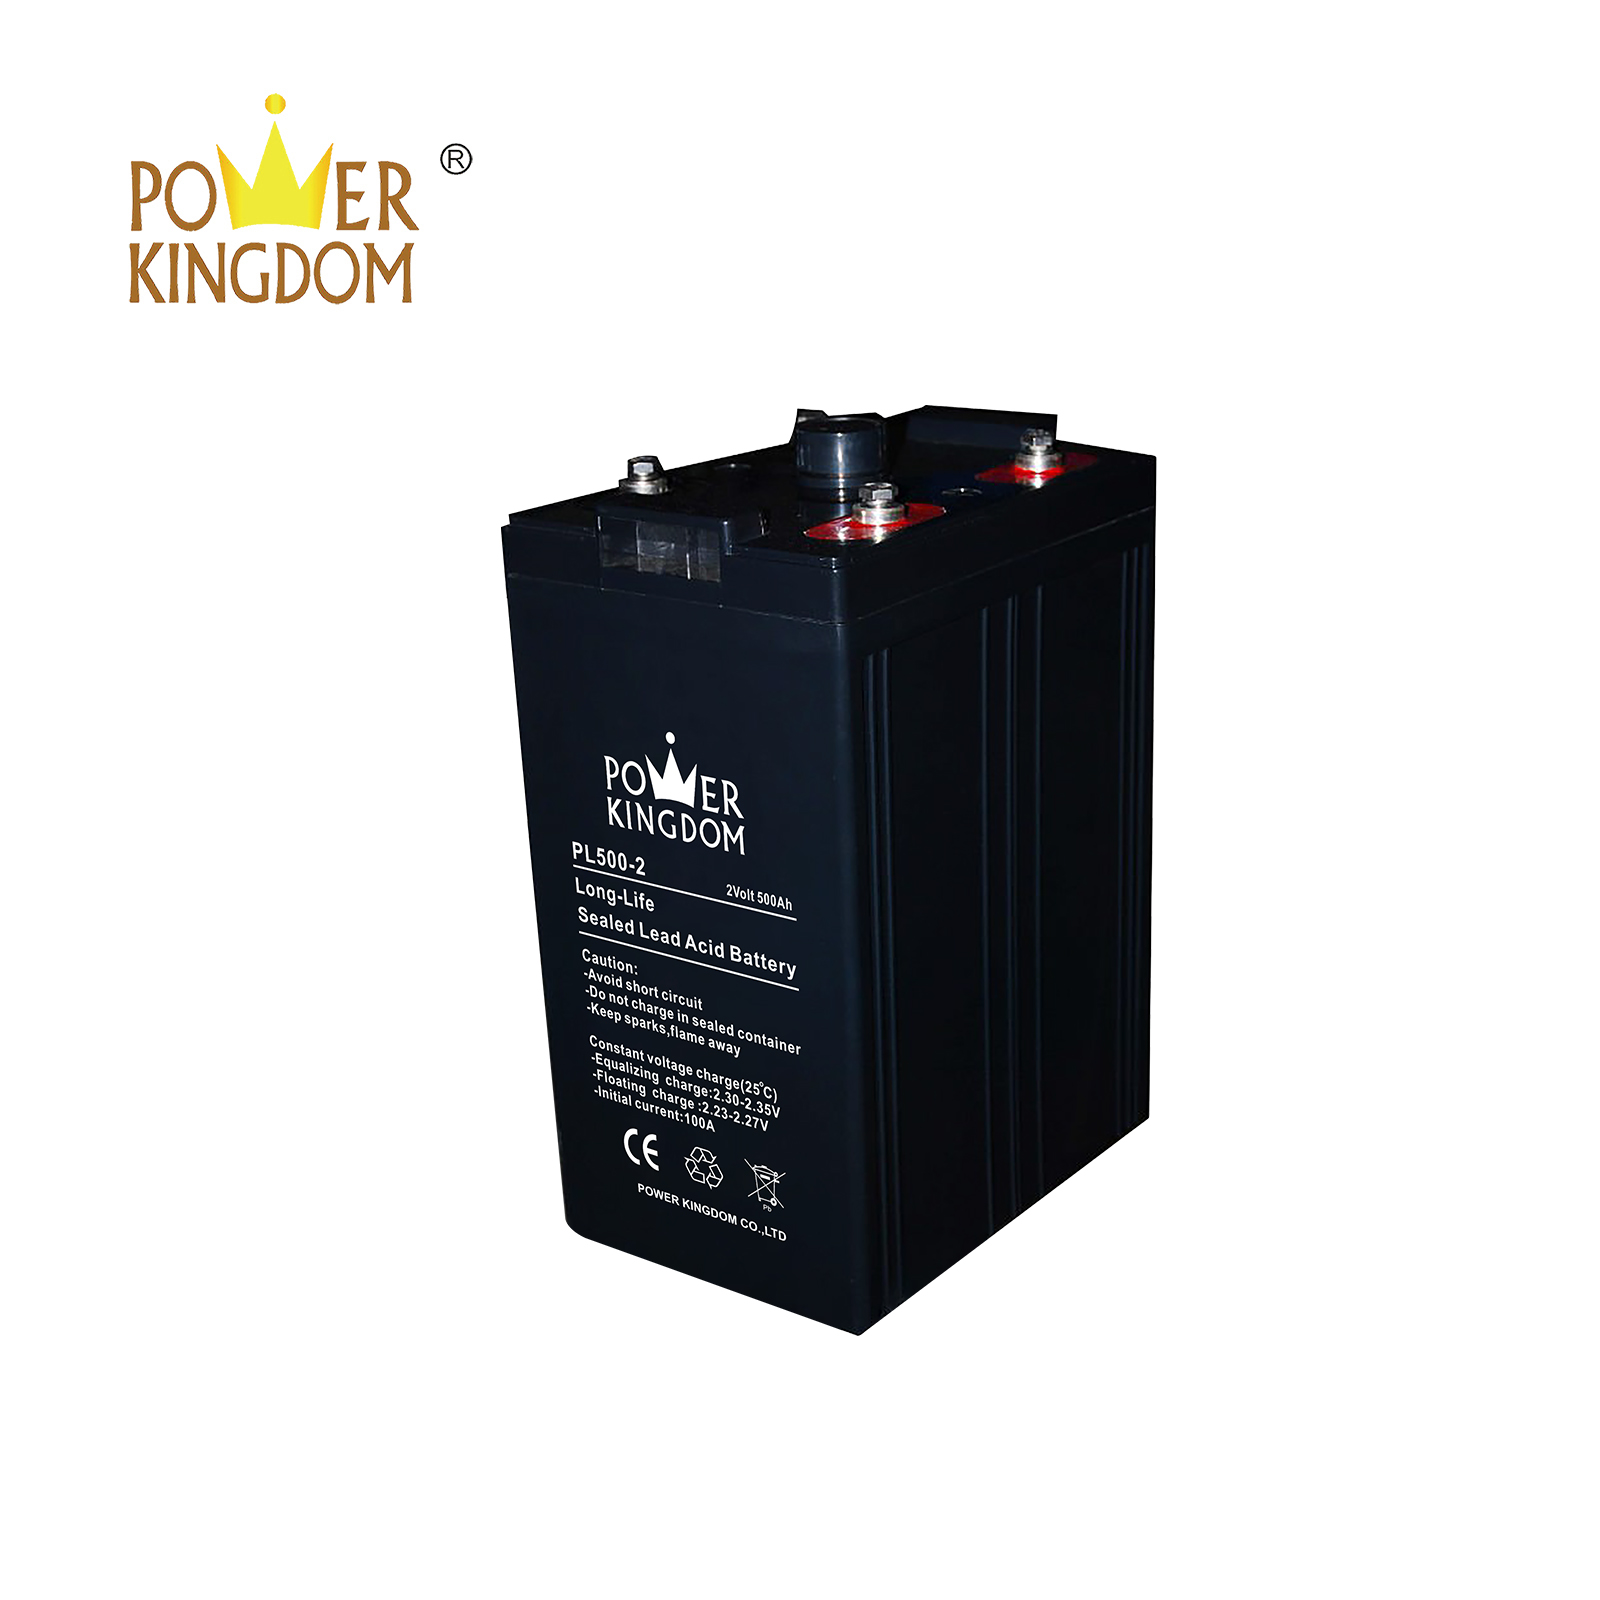 Power Kingdom 8d gel cell batteries company fire system-2